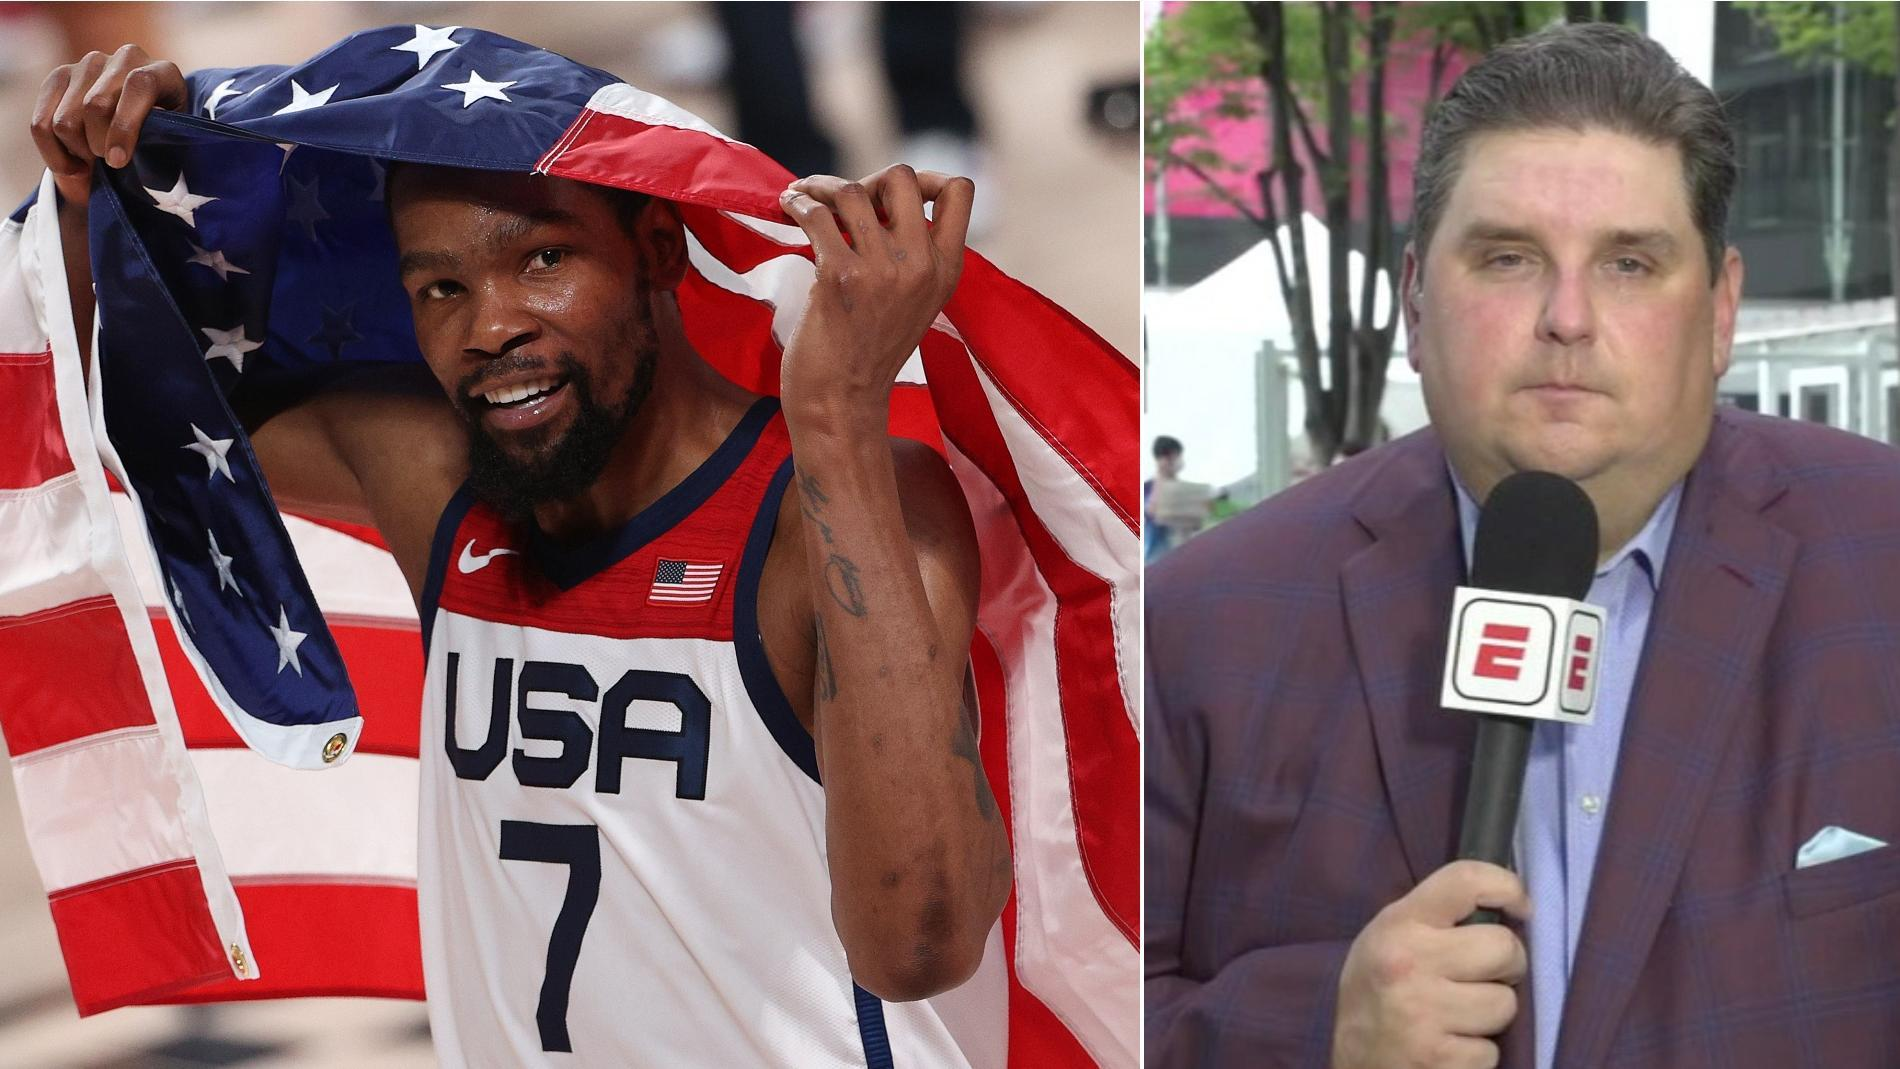 Windhorst: KD's Olympic resume 'unimpeachable' after third gold medal